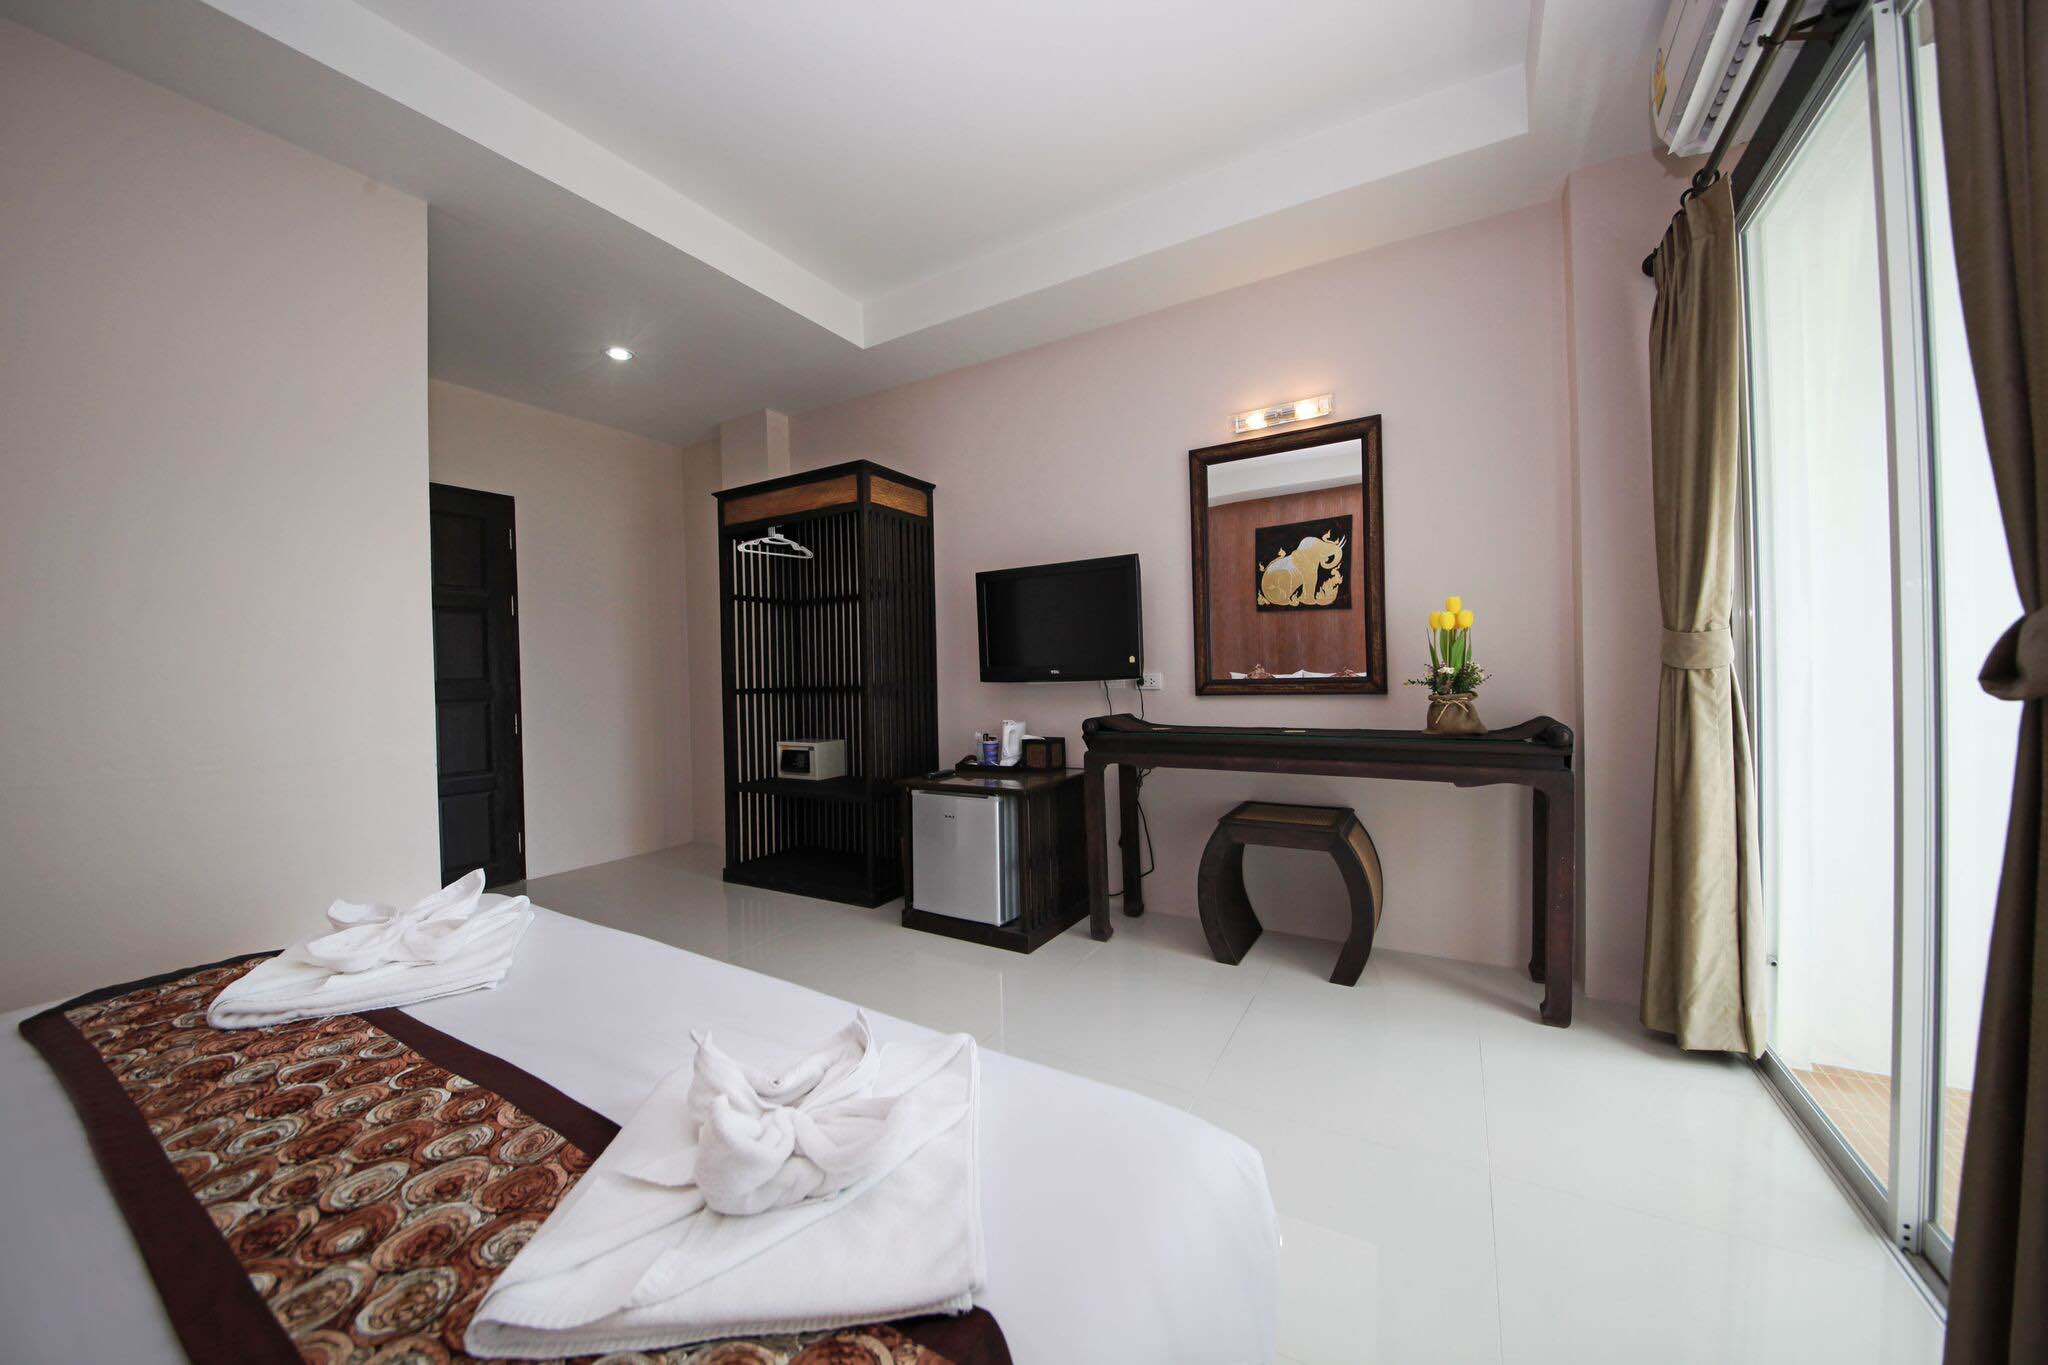 RE/MAX Top Properties Agency's Phuket,Patong Beach, Guesthouse with 61 Rooms AWARD Winning   7